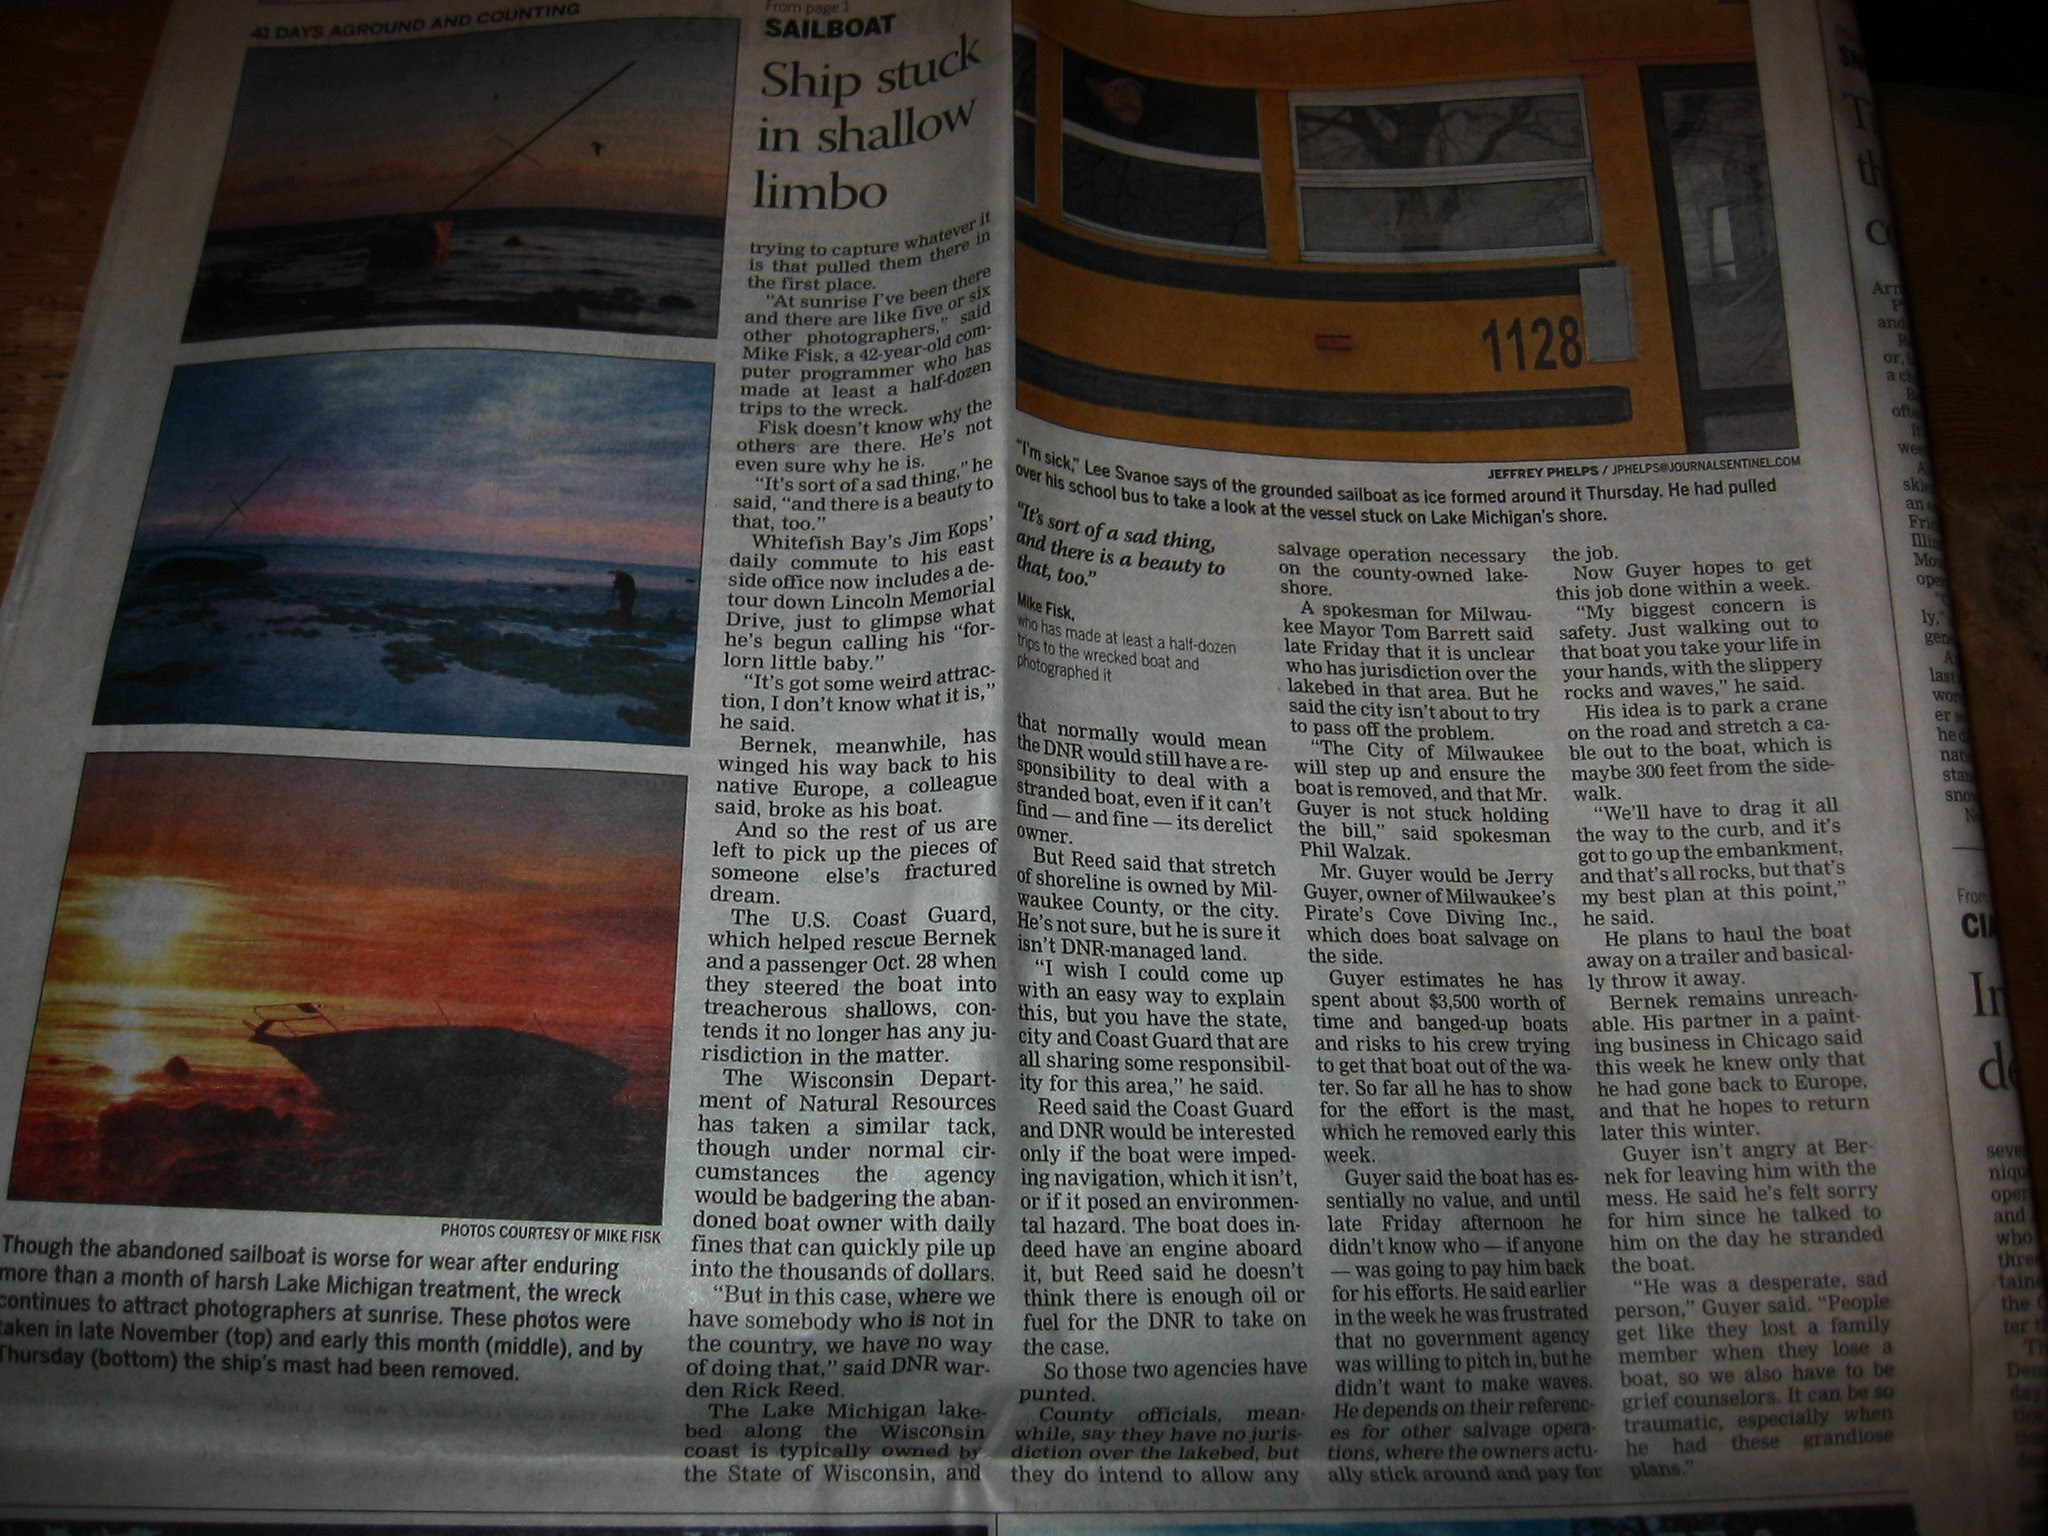 Chinook 34 Falcon - Journal Jentinal - Lead Story - Mike Fisk Pics -- soul-amp.com